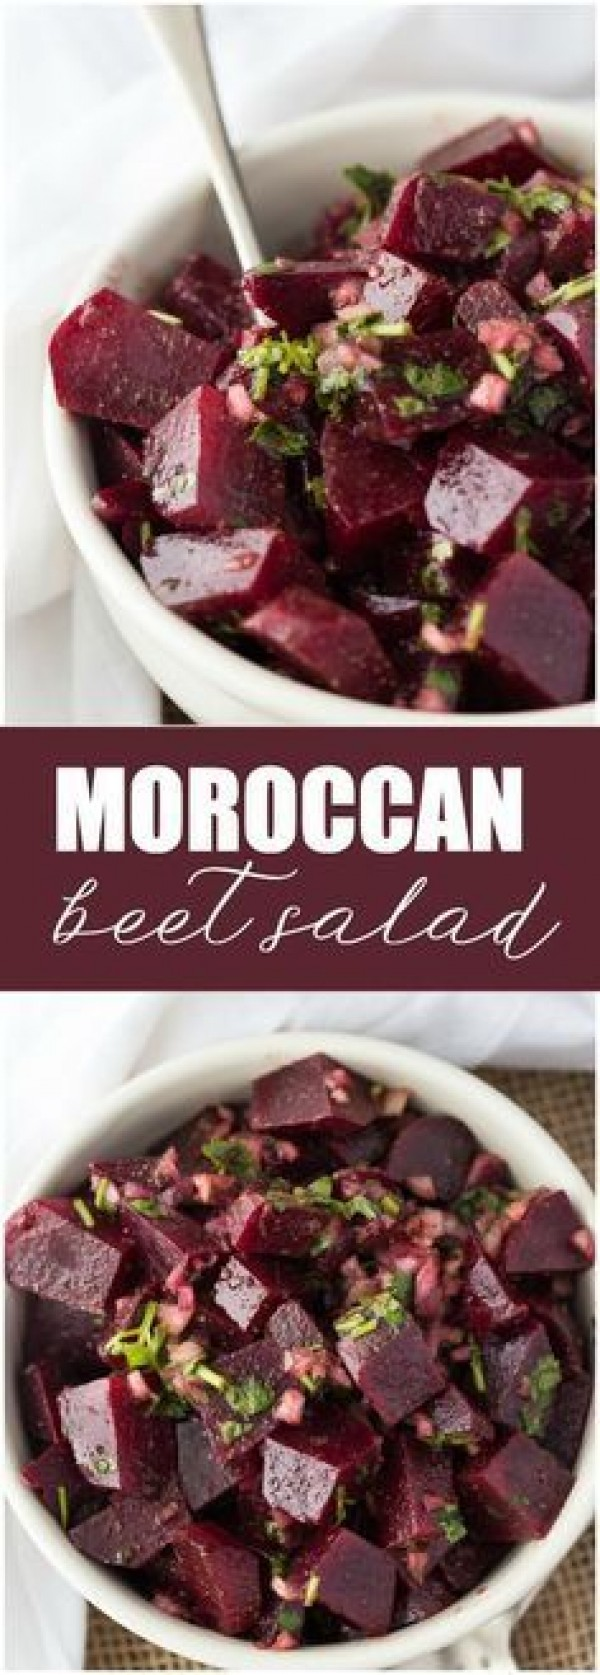 Get the recipe Moroccan Beet Salad @recipes_to_go